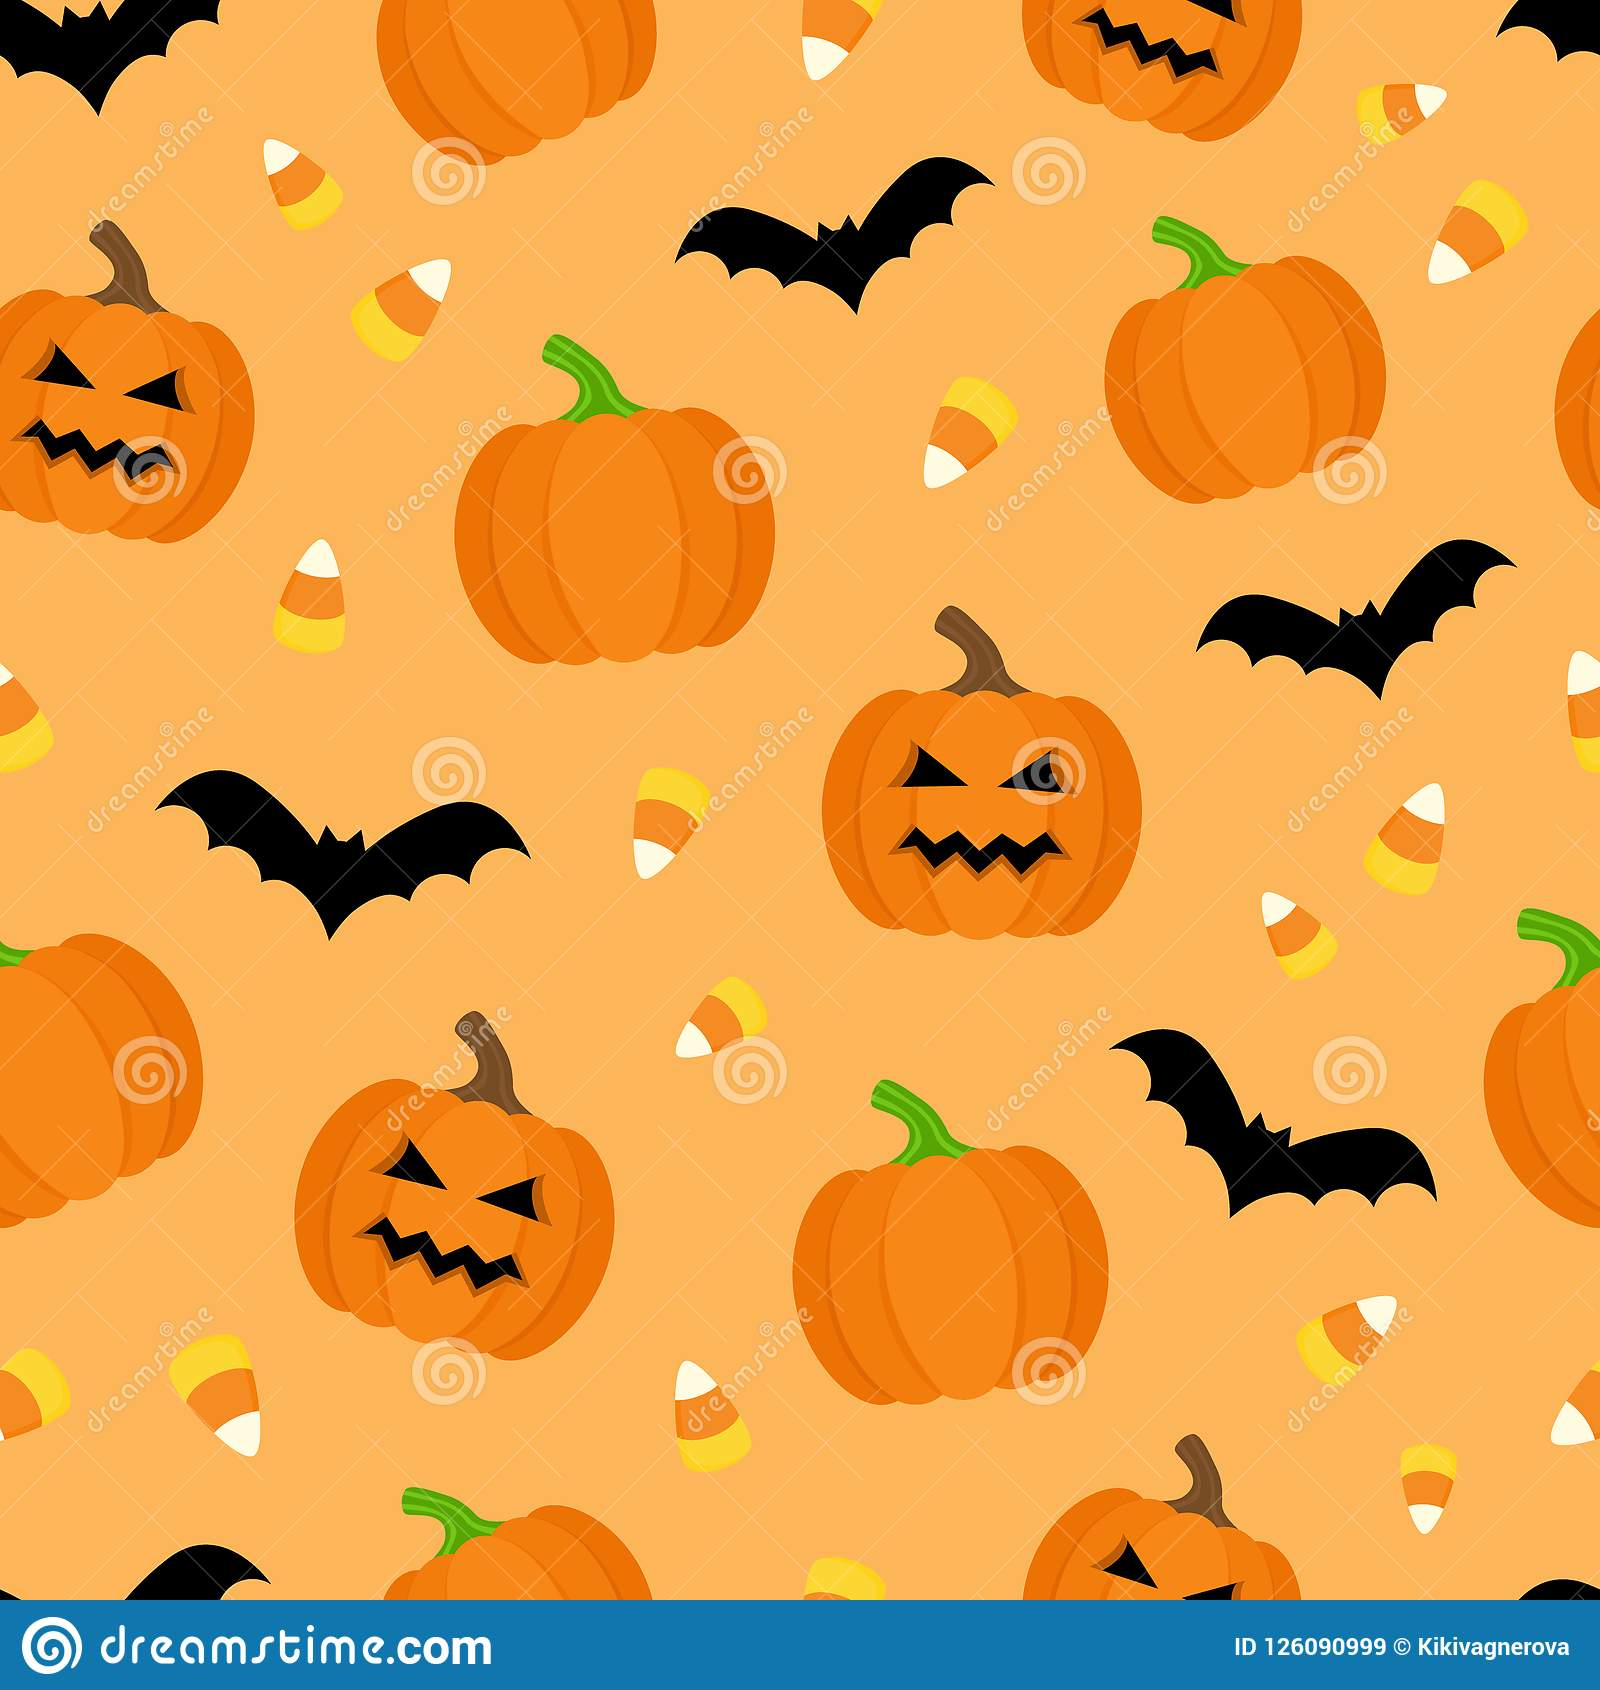 Cute Pictures Of Halloween.Cute Halloween Vector Seamless Pattern Stock Vector Illustration Of Pumpkin Funny 126090999